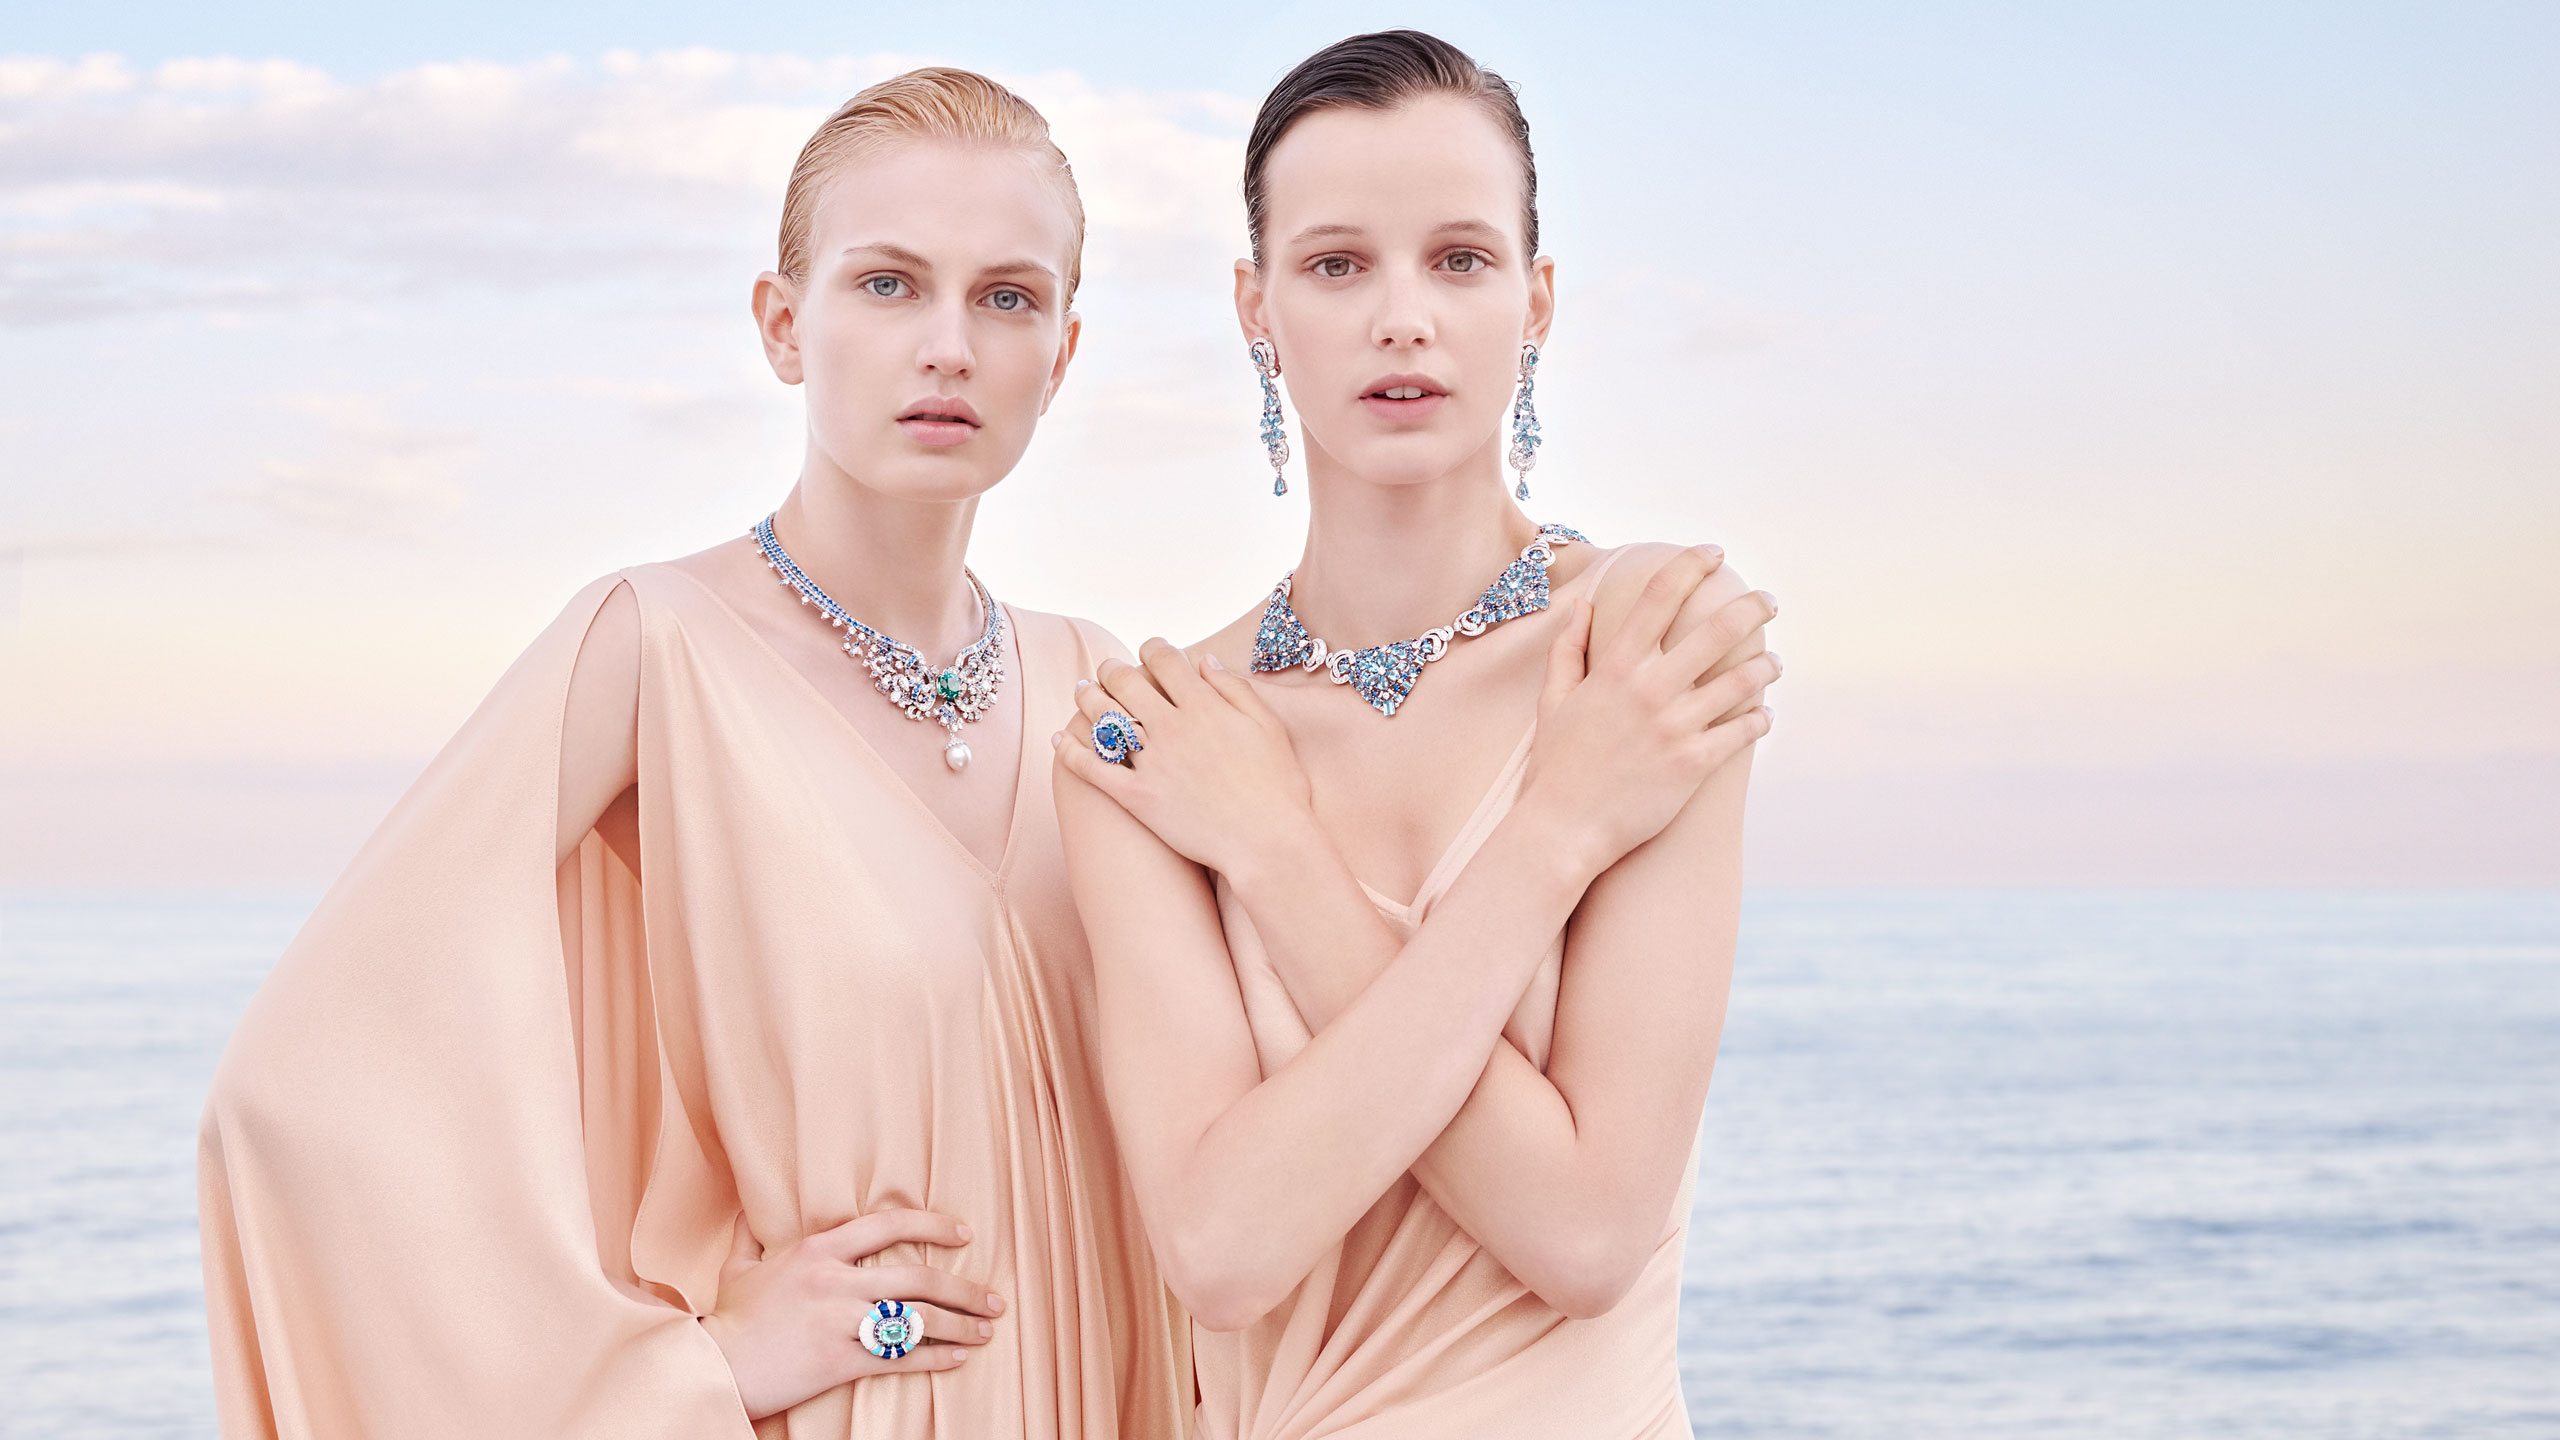 Seven Seas campaign shot © Van Cleef & Arpels. Photo by Sonia Sieff.